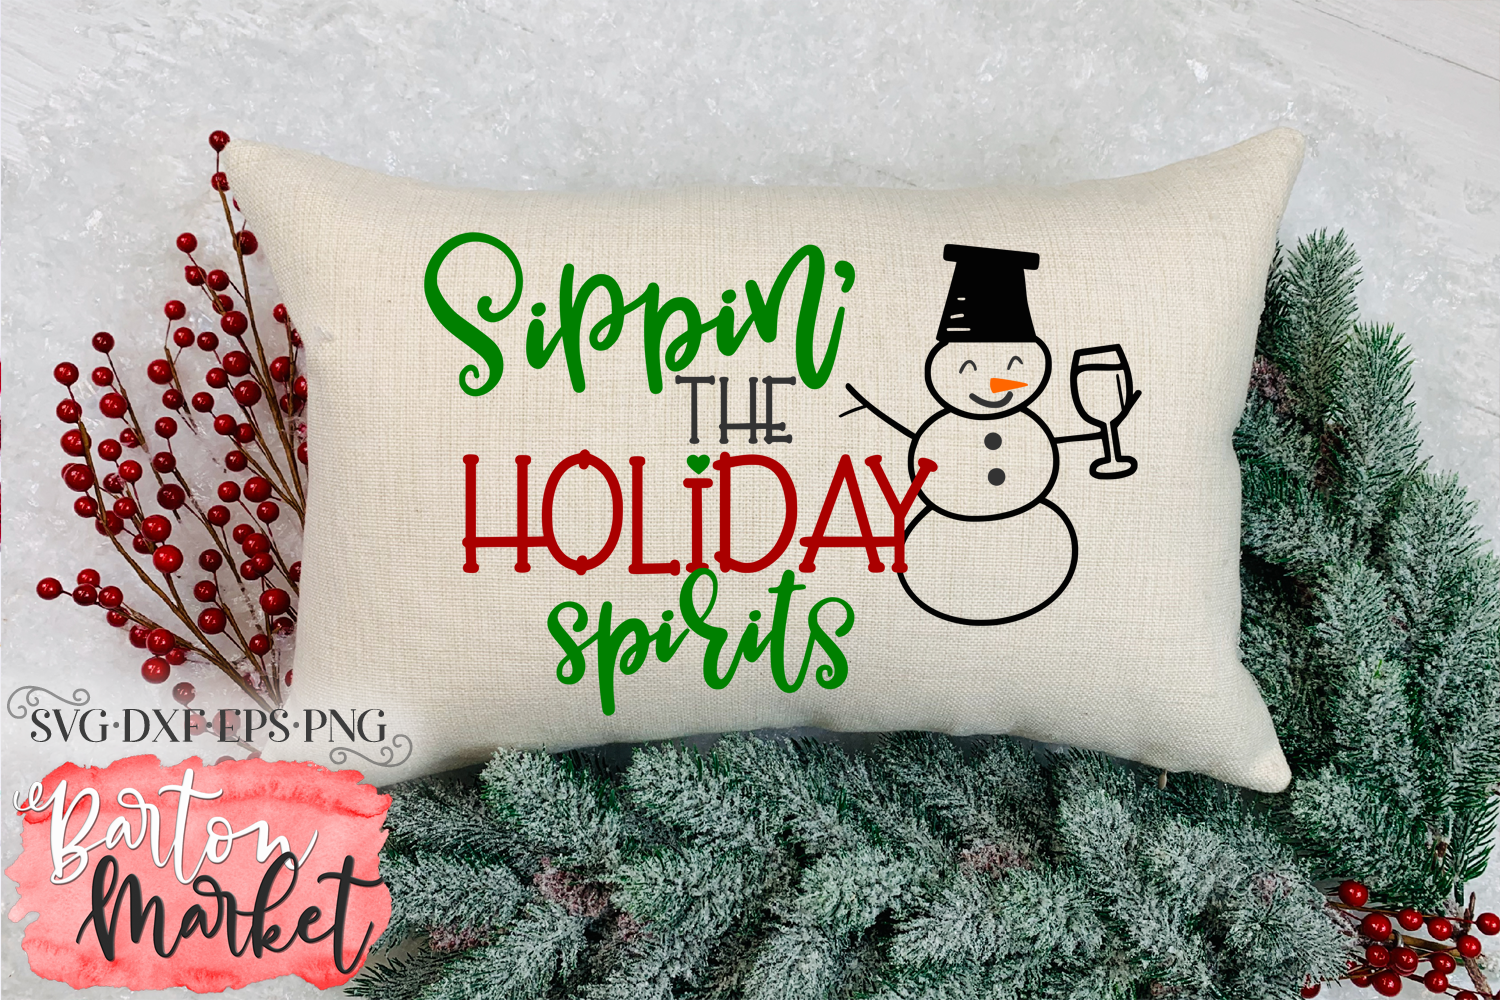 Sippin' The Holiday Spirits SVG DXF EPS PNG example image 1